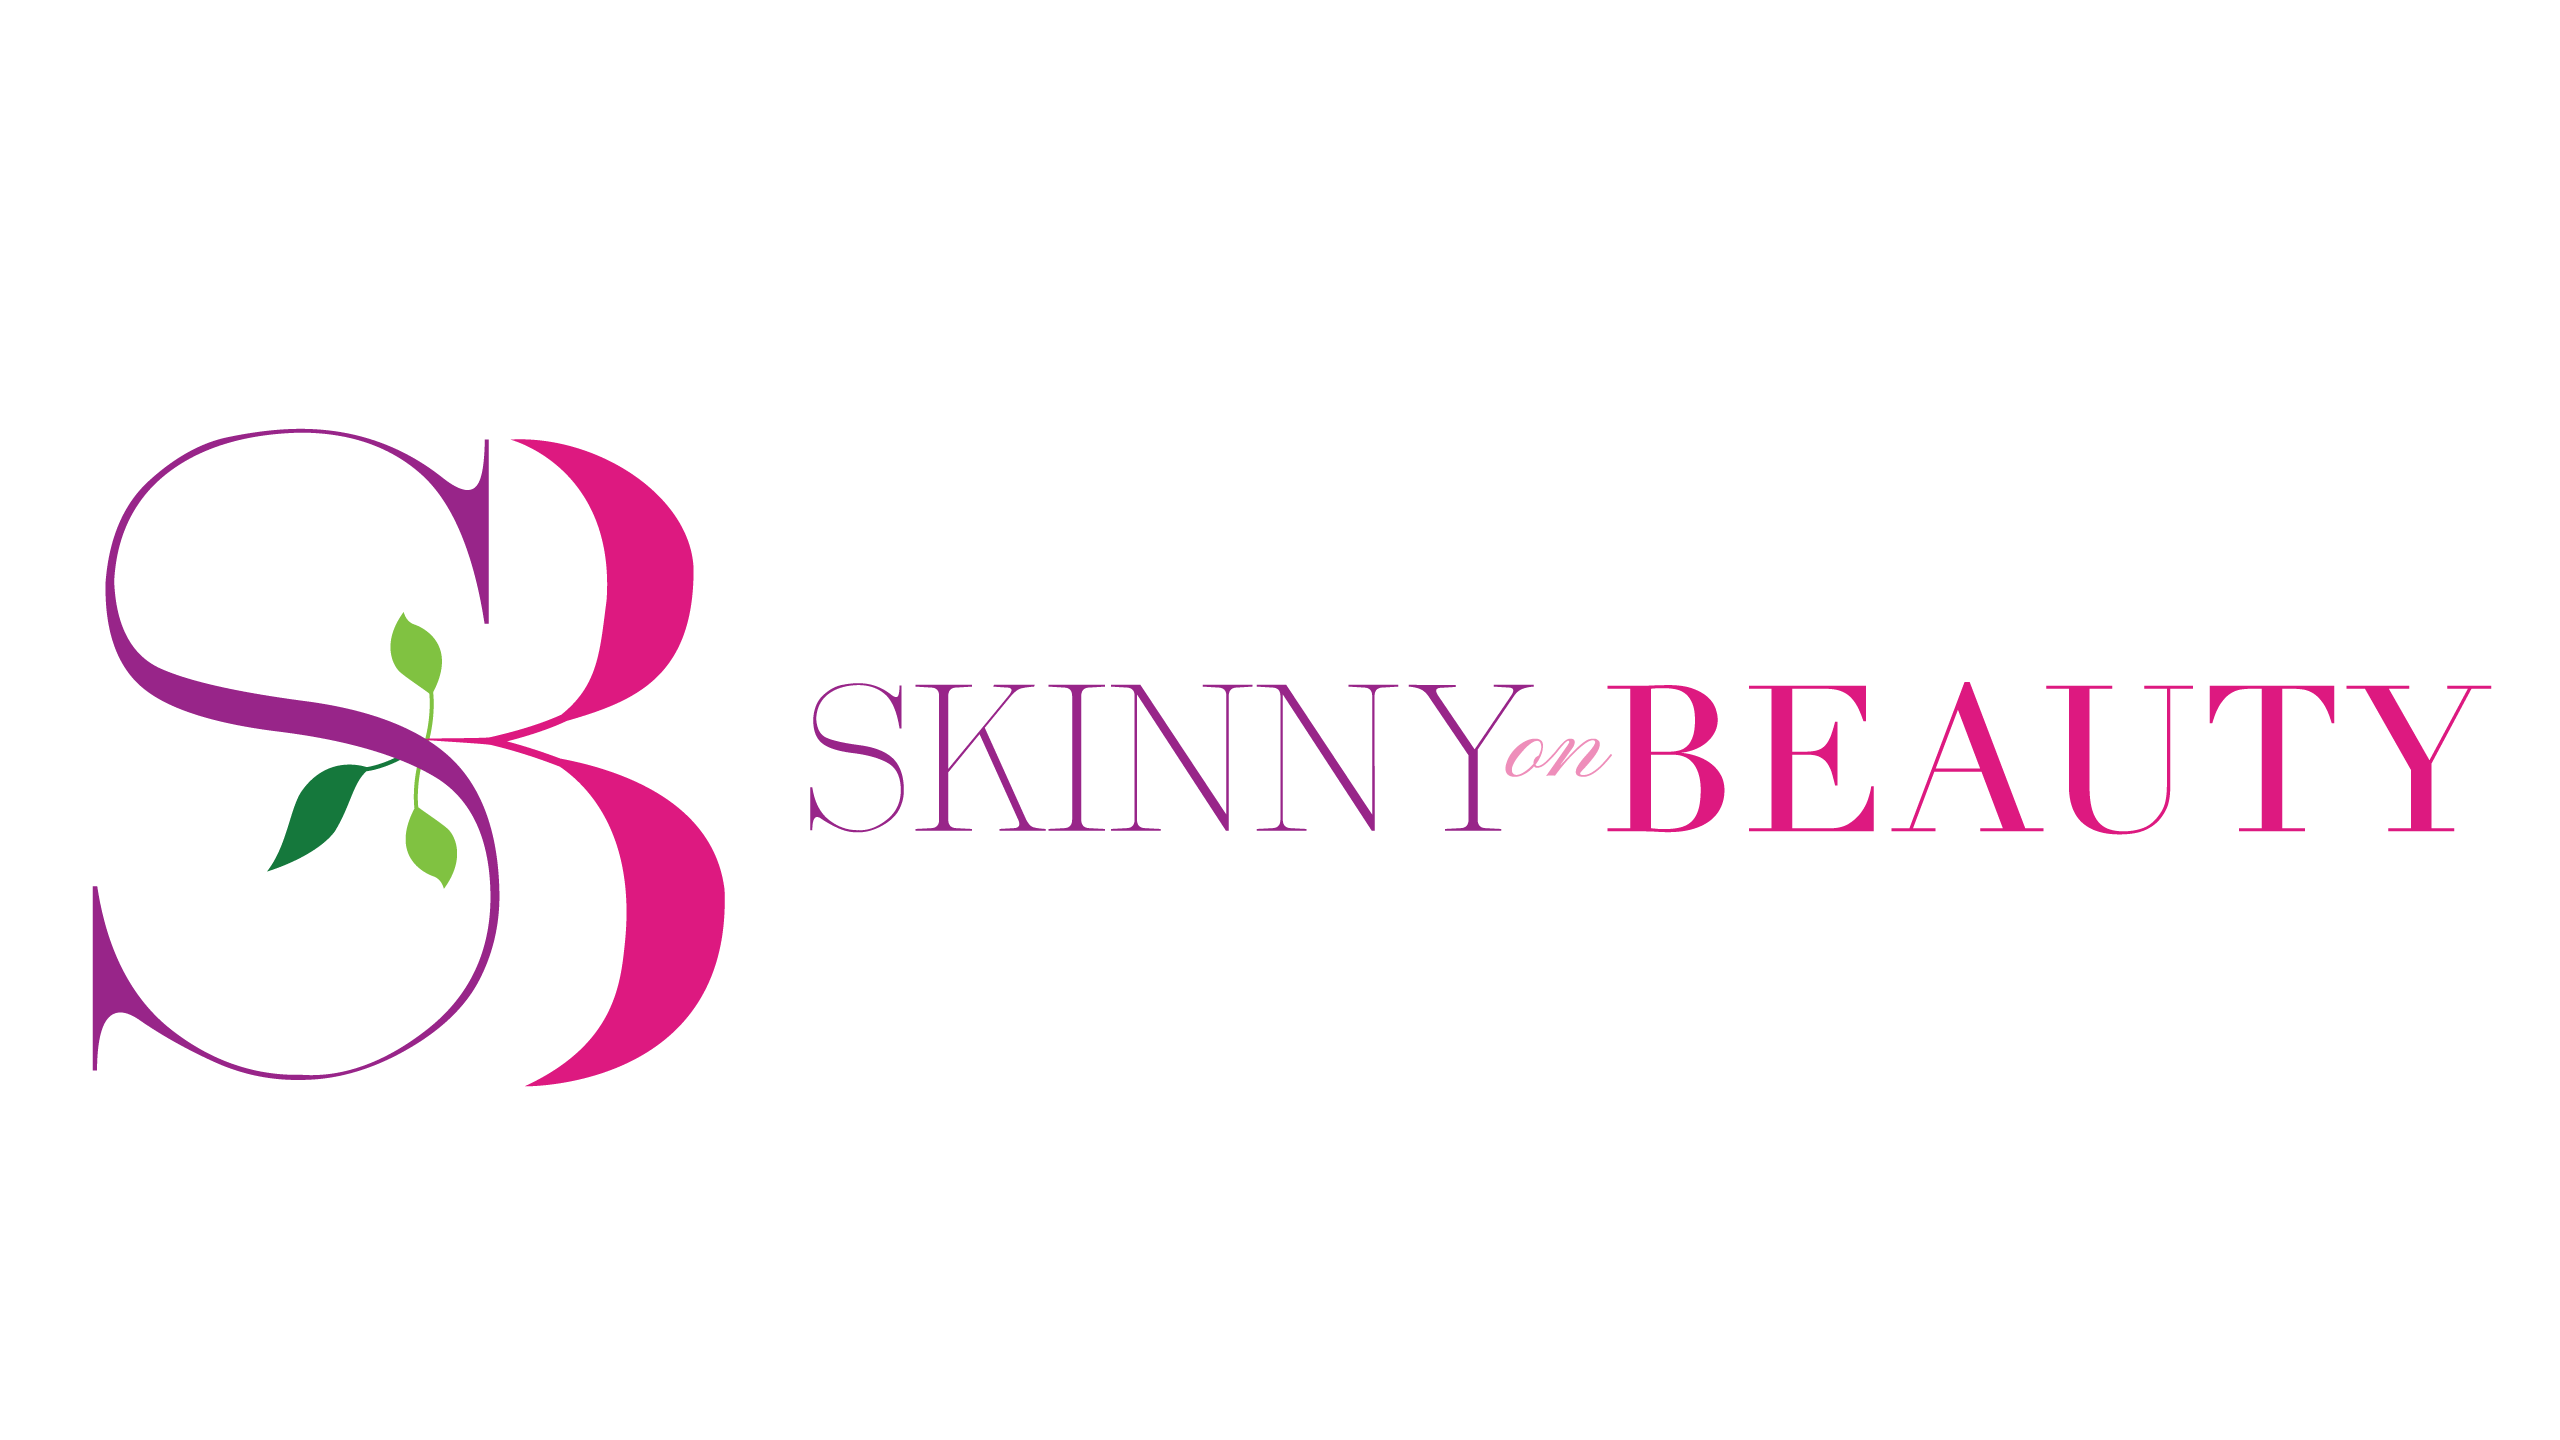 The Skinny on Beauty